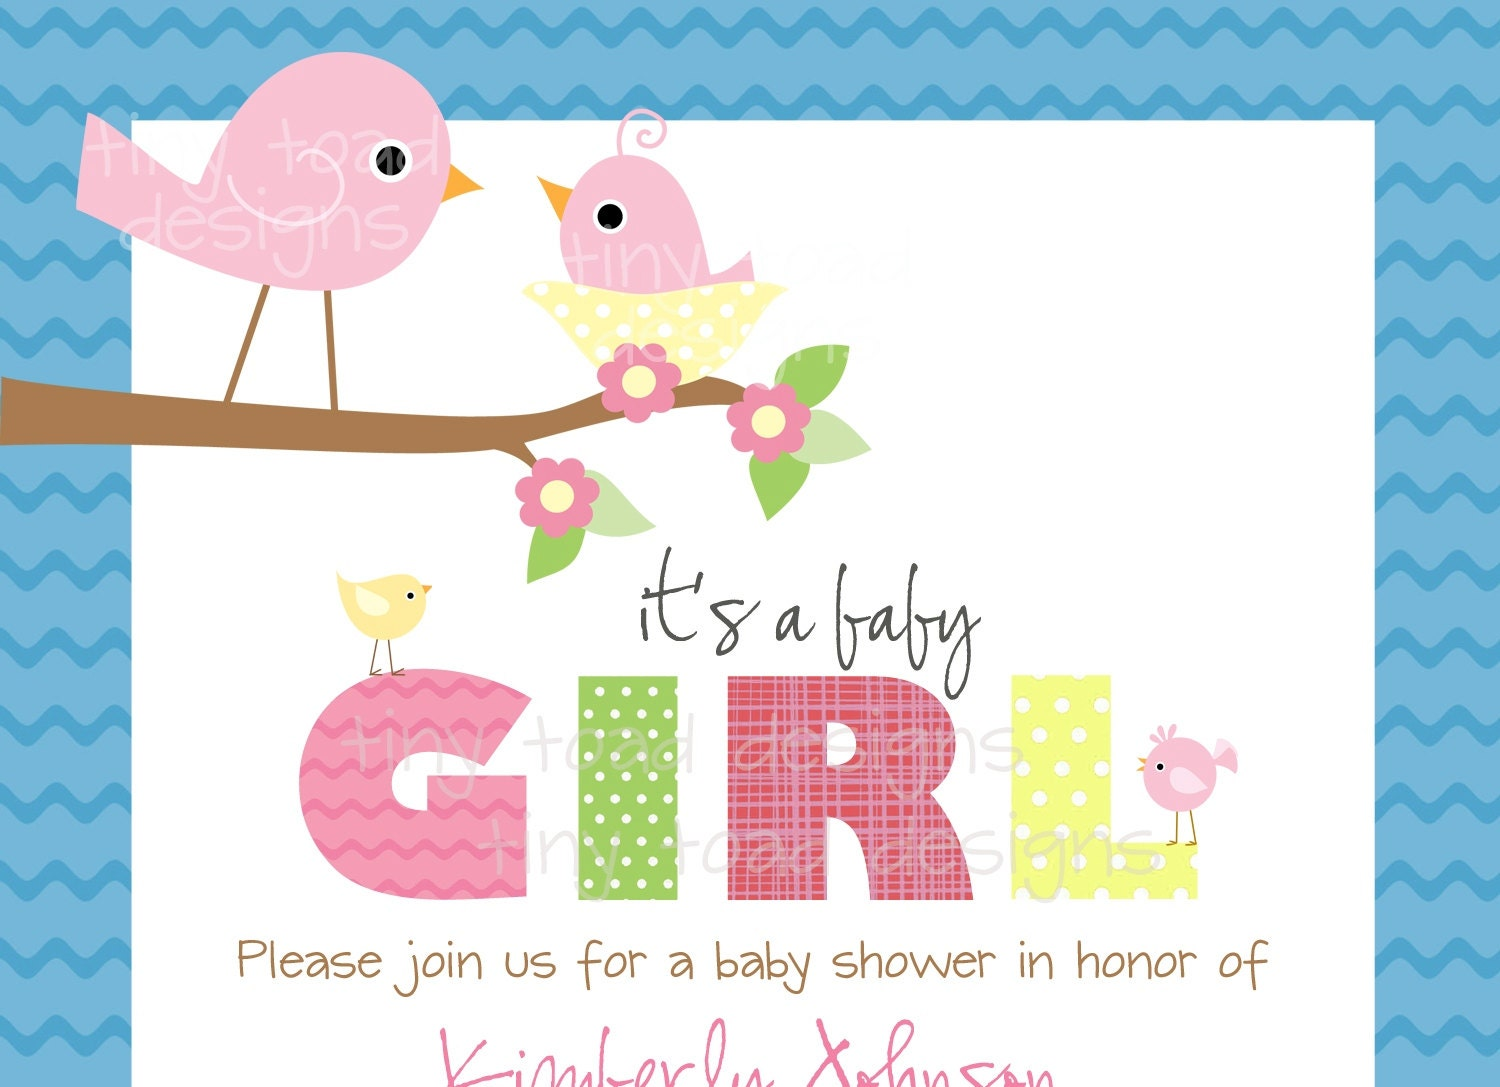 Bird Baby Shower Invitations was very inspiring ideas you may choose for invitation ideas